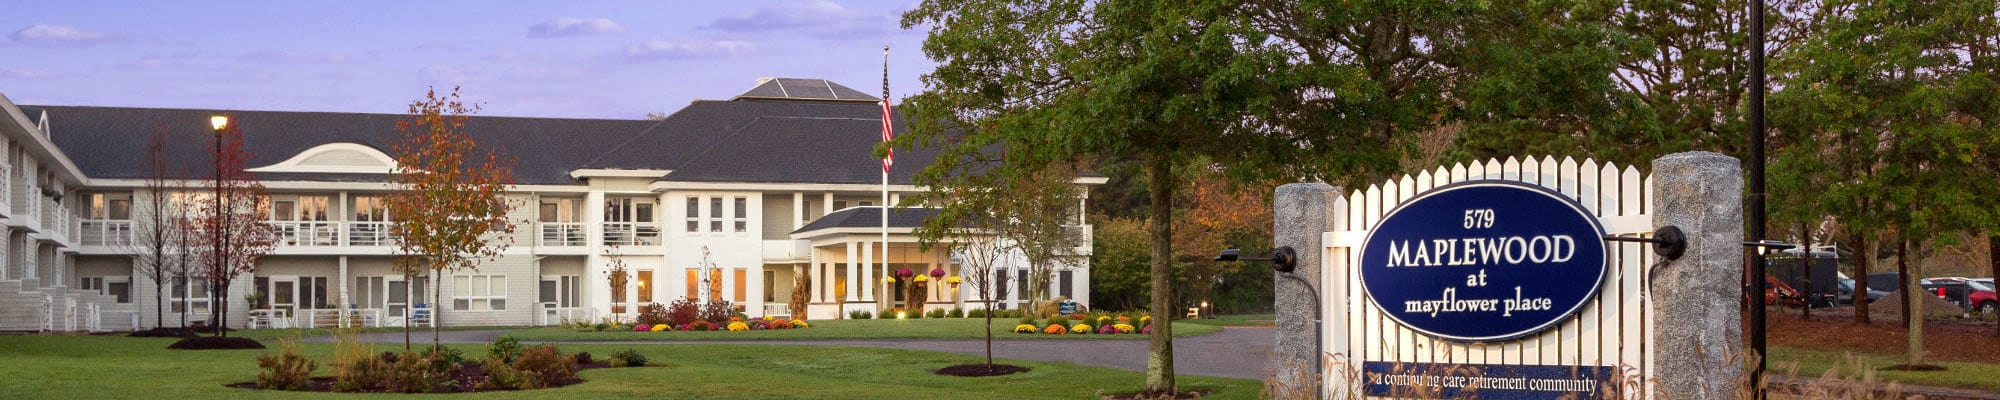 Friendship suites at Maplewood at Mayflower Place in West Yarmouth, Massachusetts